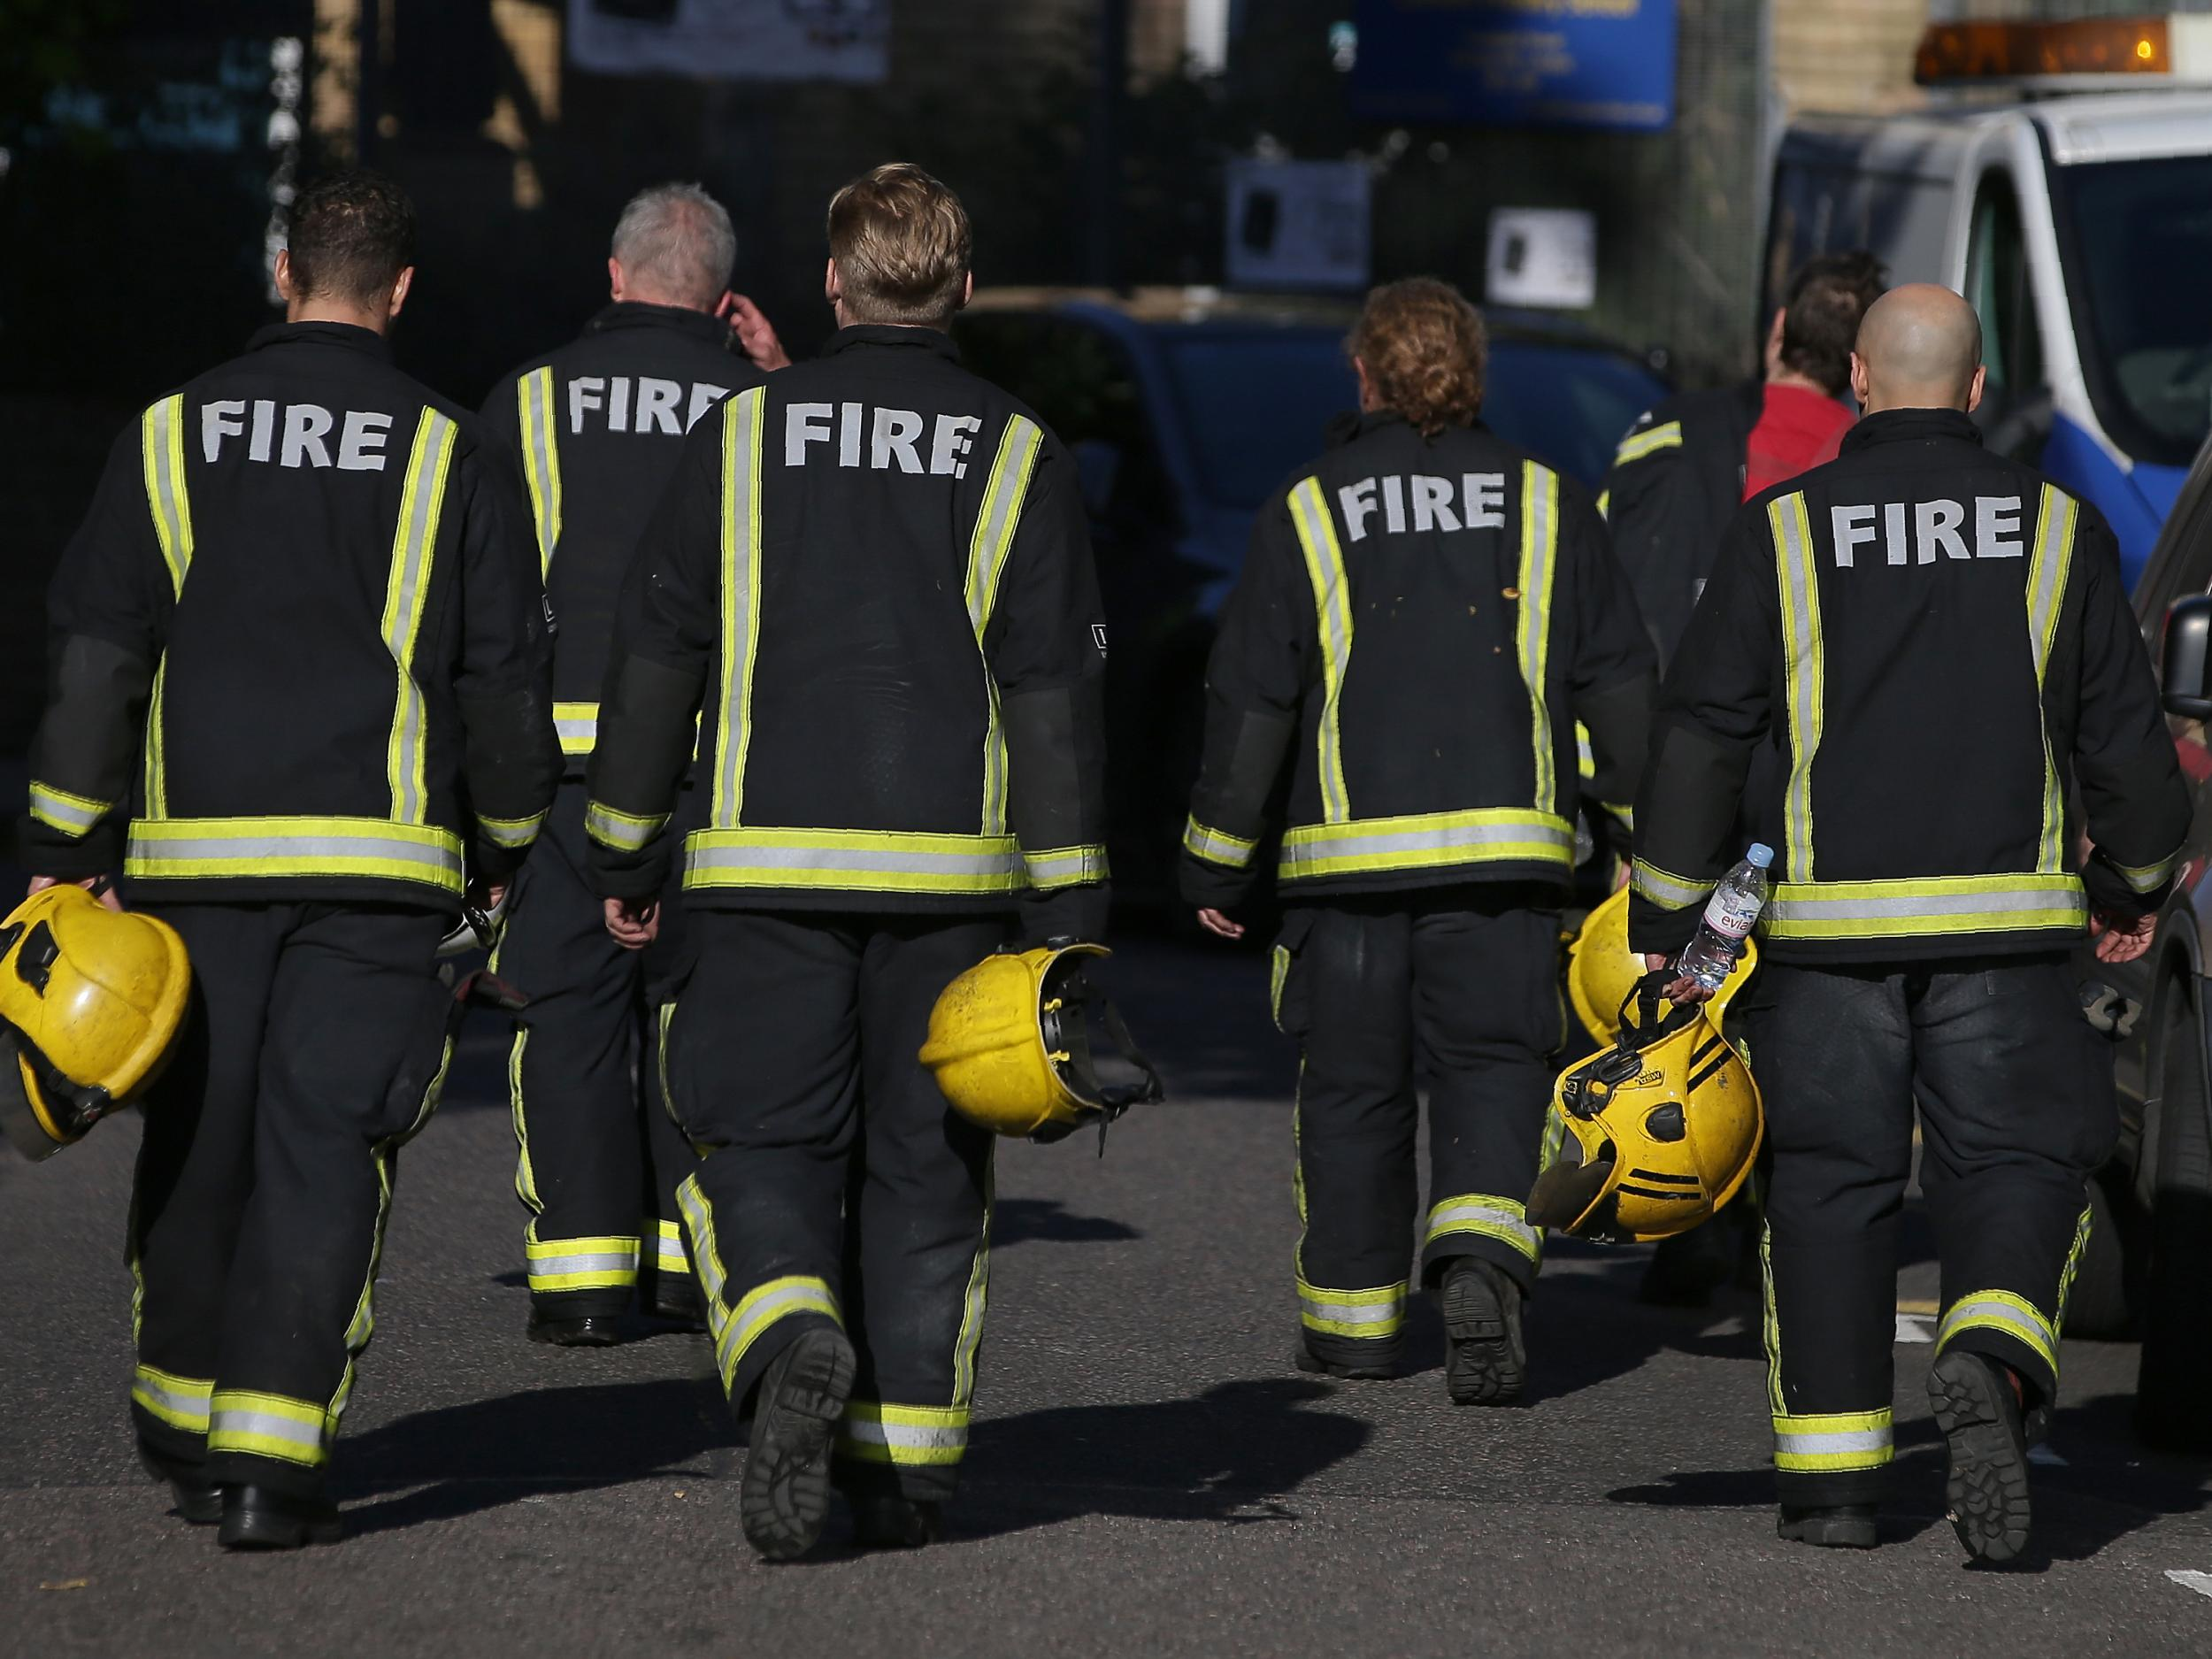 I was a firefighter at Grenfell Tower. Here's the truth behind the myths